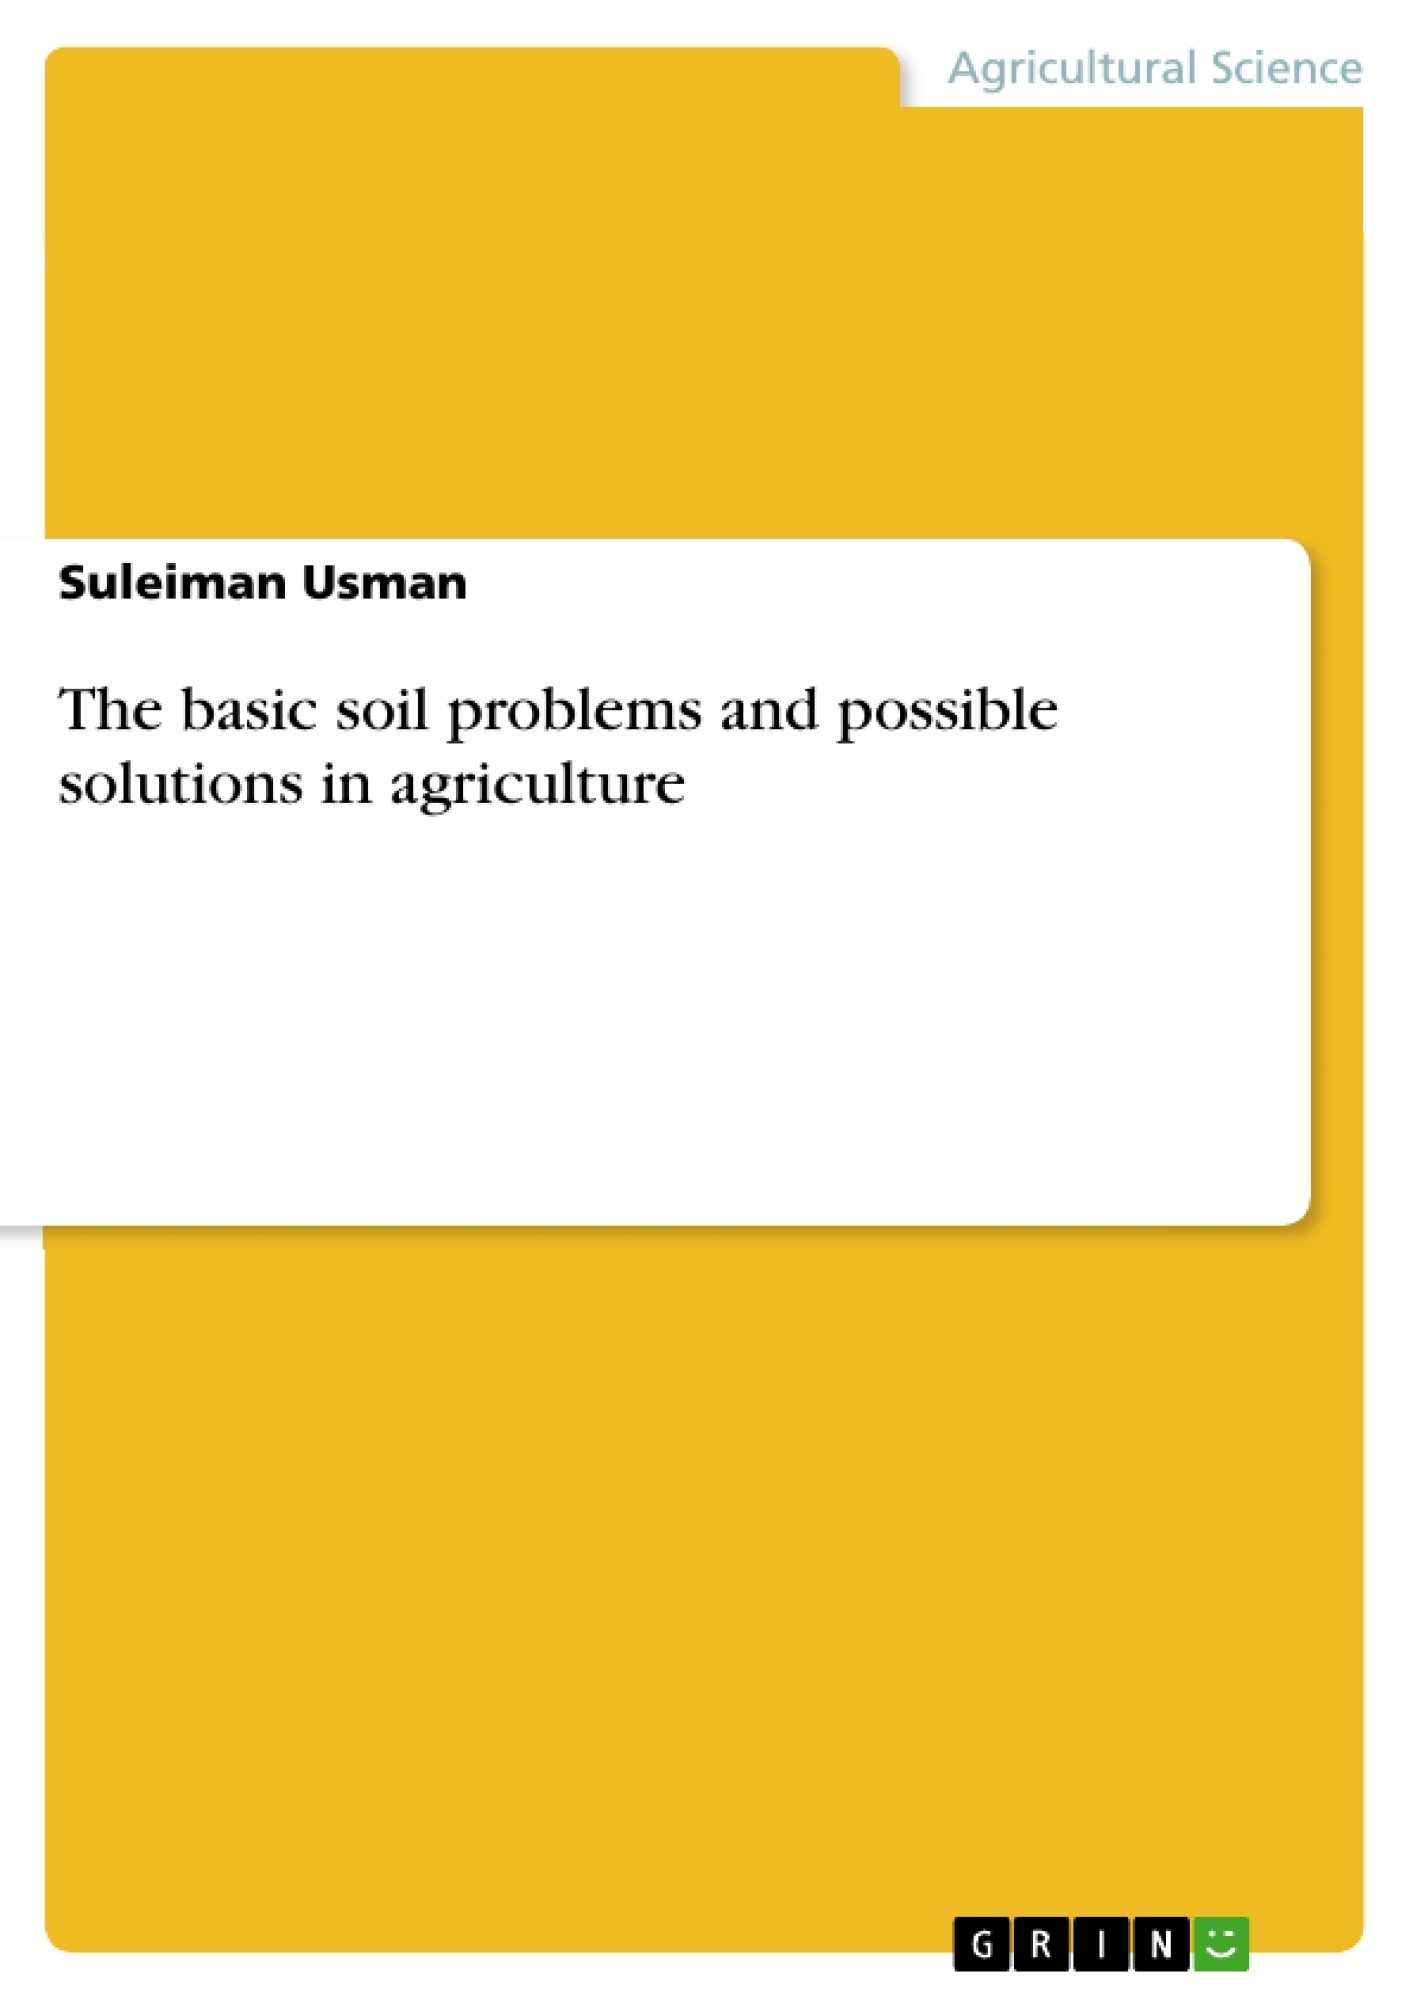 the basic soil problems and possible solutions in agriculture upload your own papers earn money and win an iphone 7